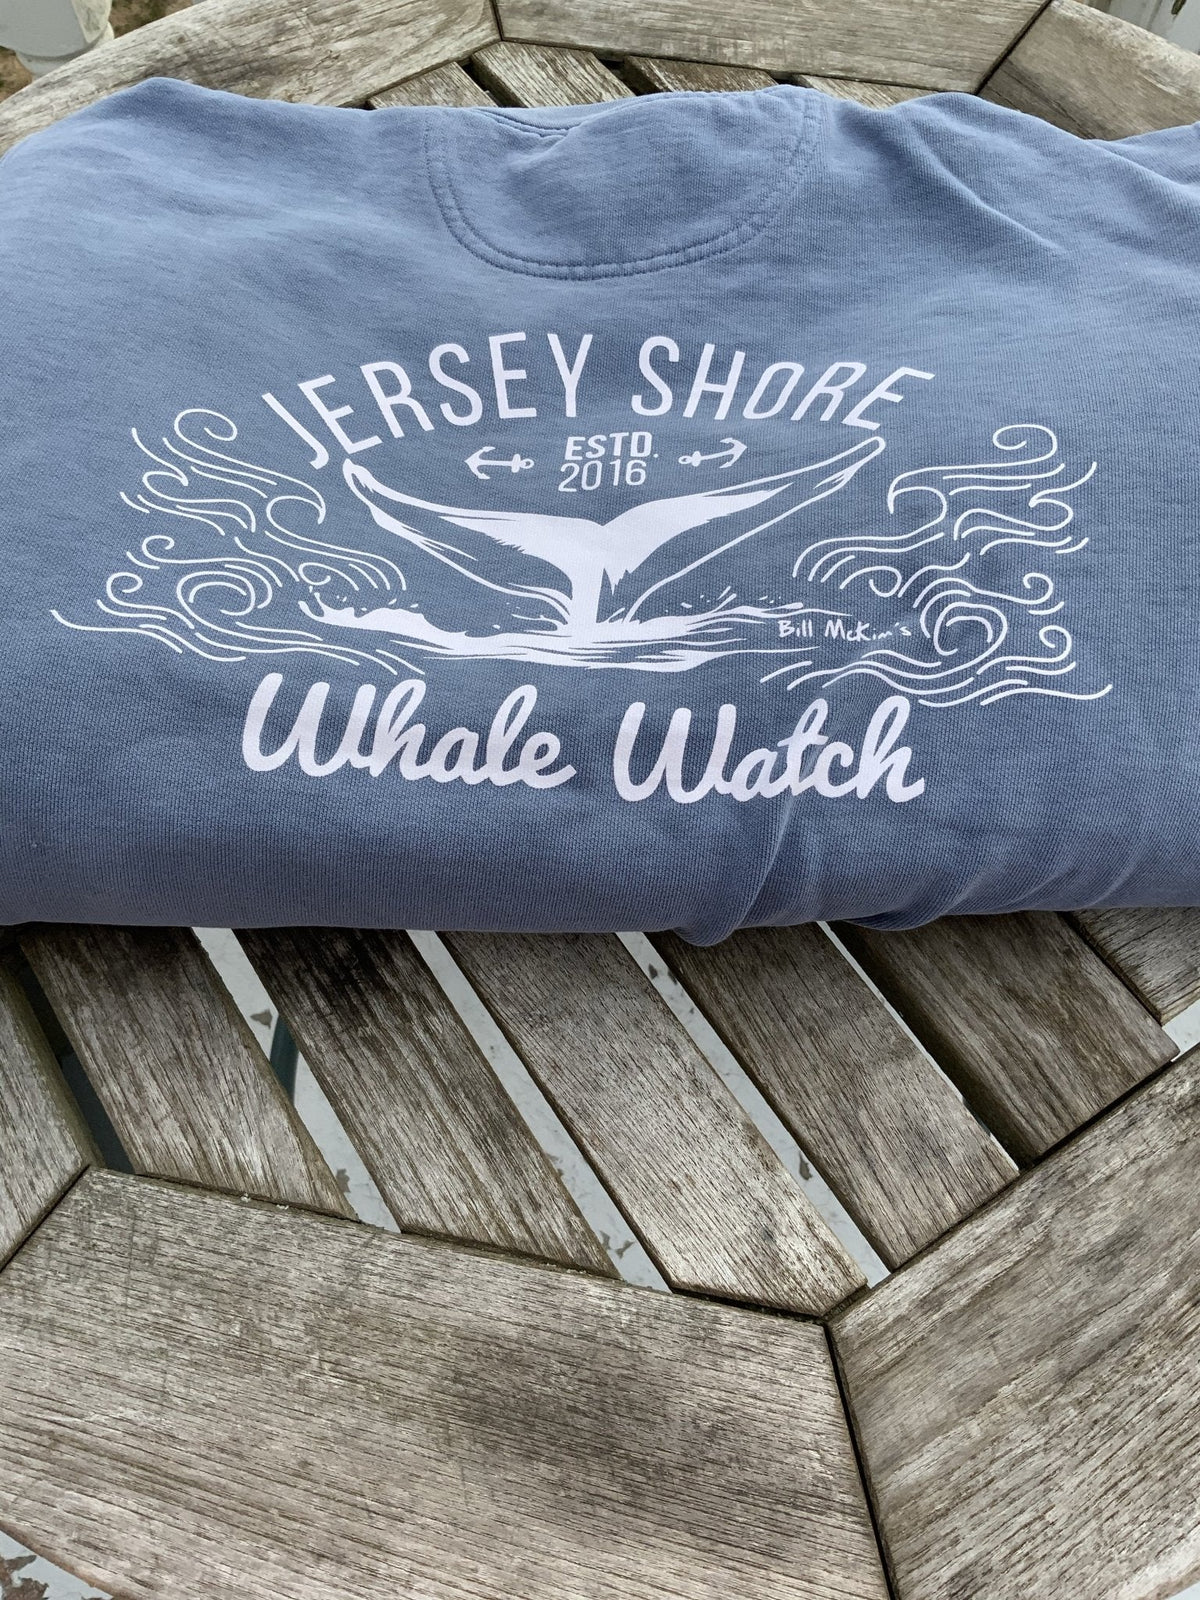 Crew Neck Heavyweight Sweatshirt EST. 2016 DESIGN - Bill McKim Photography -Jersey Shore whale watch tours